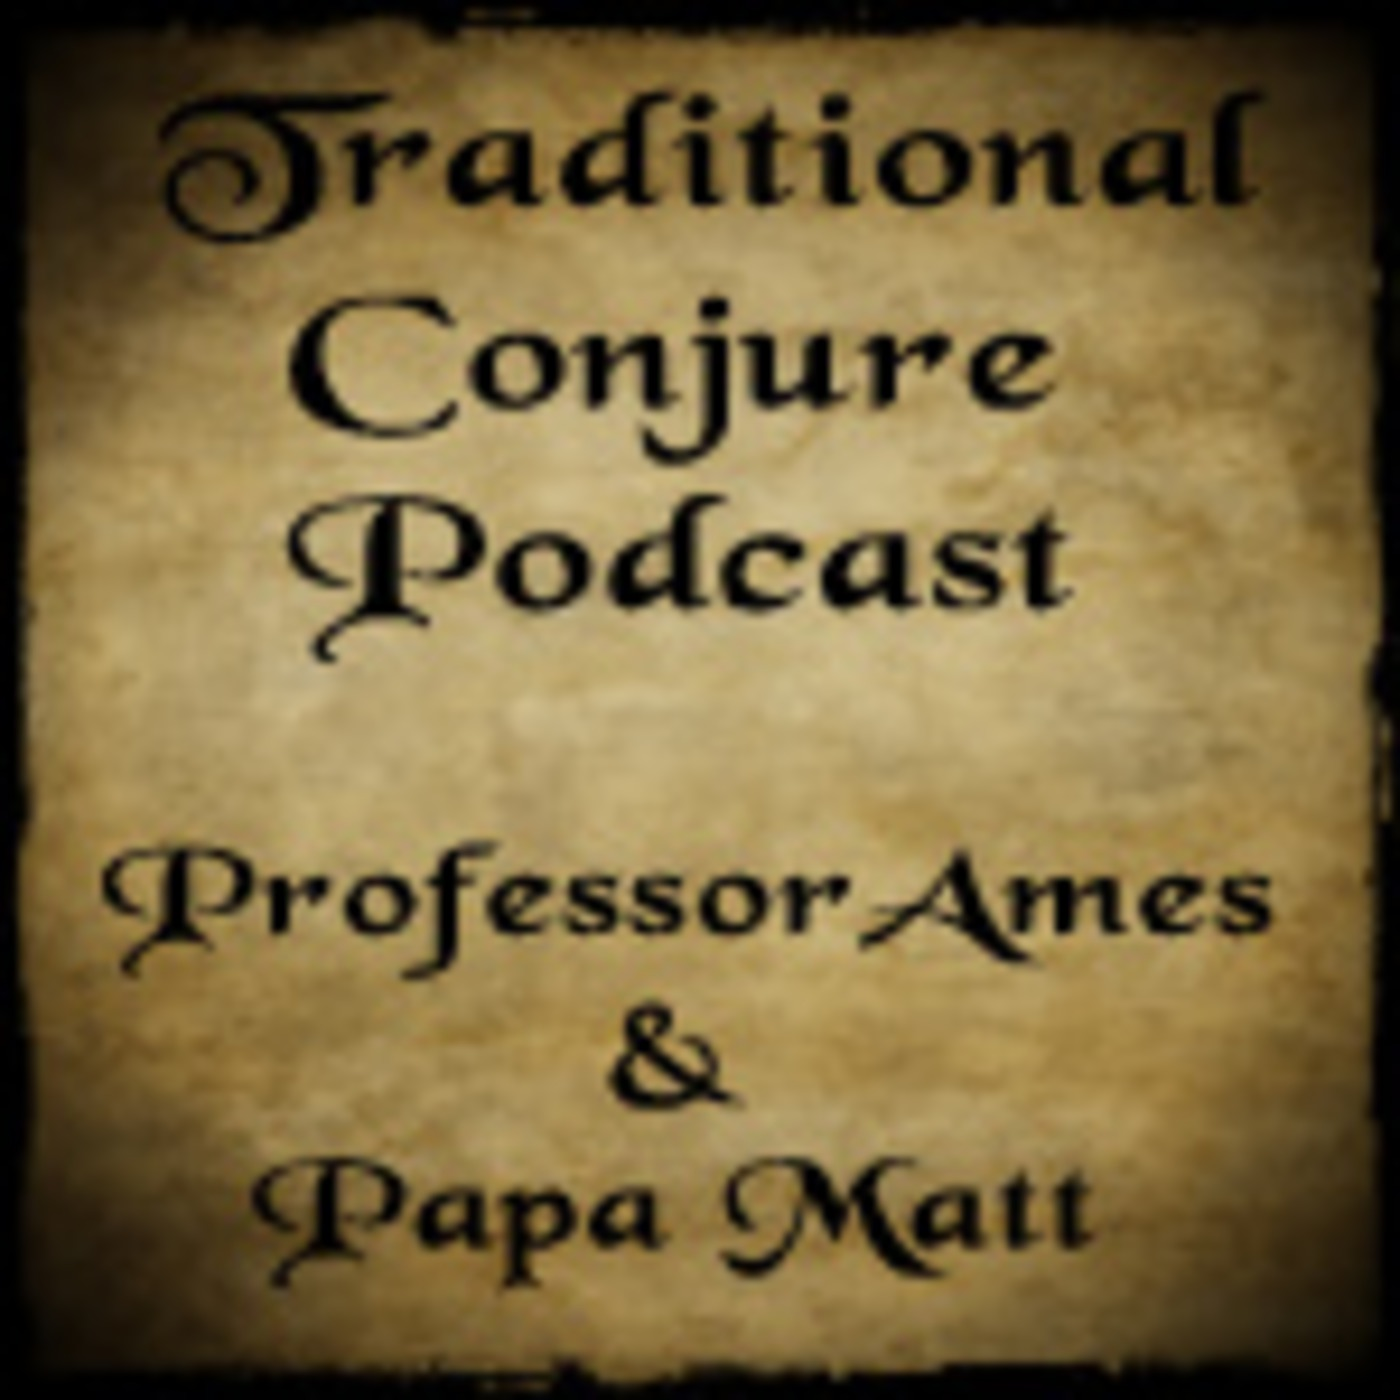 Traditional Conjure Podcast